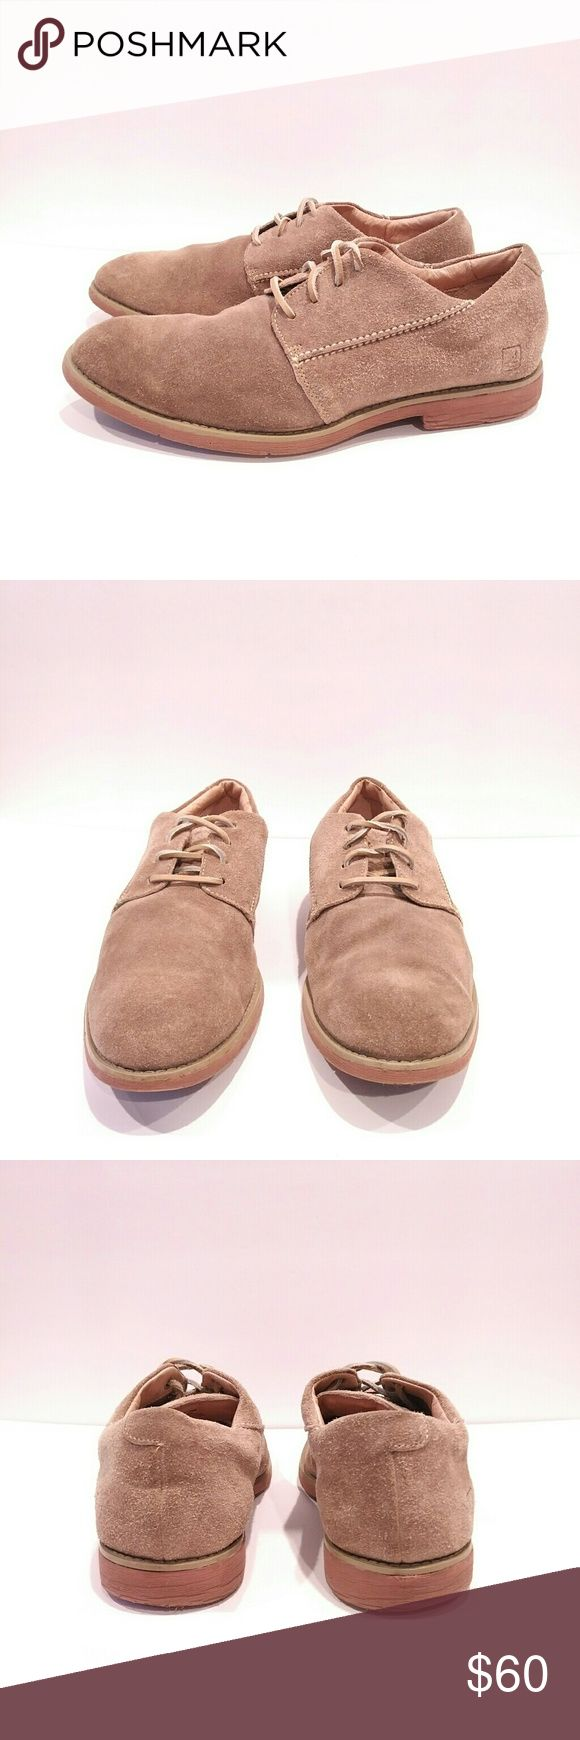 Sperry Mens size 10 tan suede mens dress shoe Sperry Mens shoes size 10 Tan suede rubber  Leather laces rubber soles Sperry Top-Sider Shoes Oxfords & Derbys